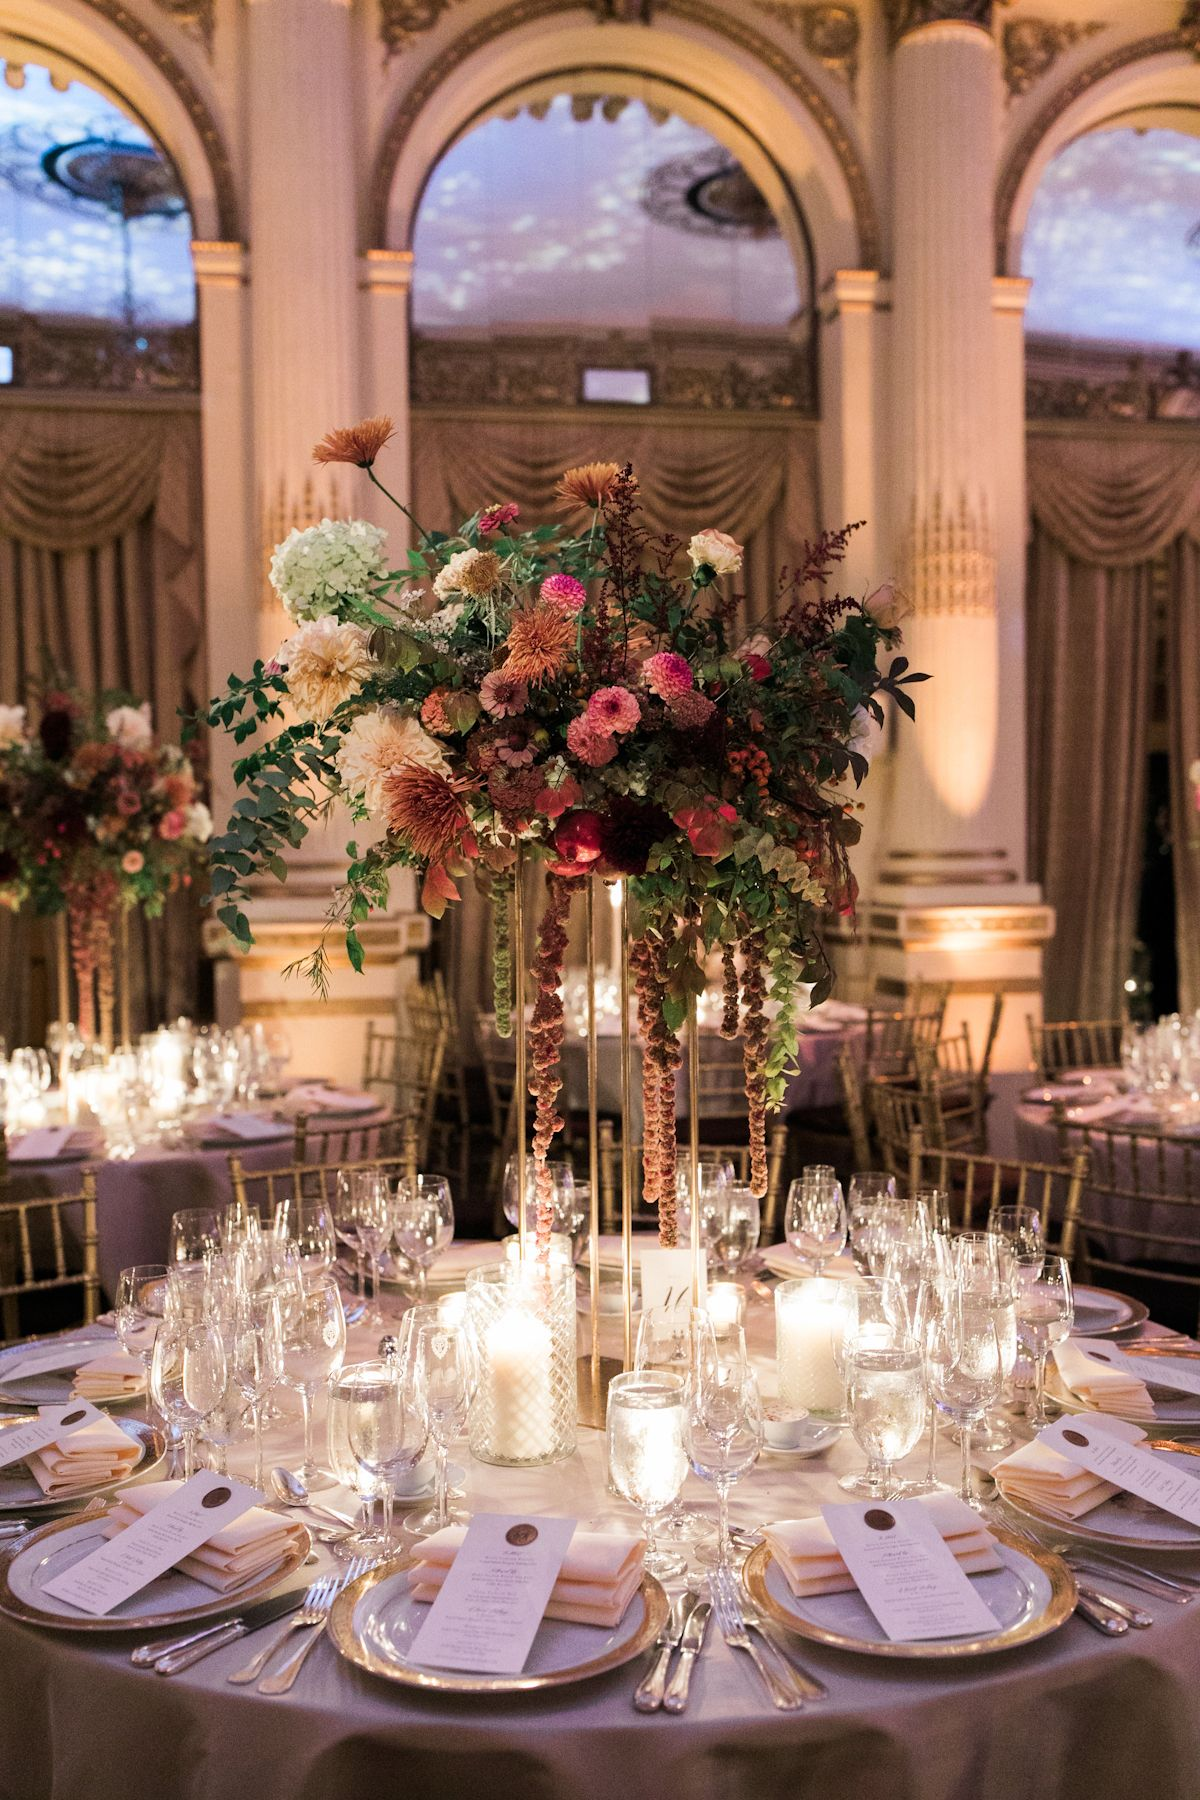 The Plaza Hotel Wedding Ny Ang Weddings And Events Plaza Hotel Wedding Hotel Wedding Wedding